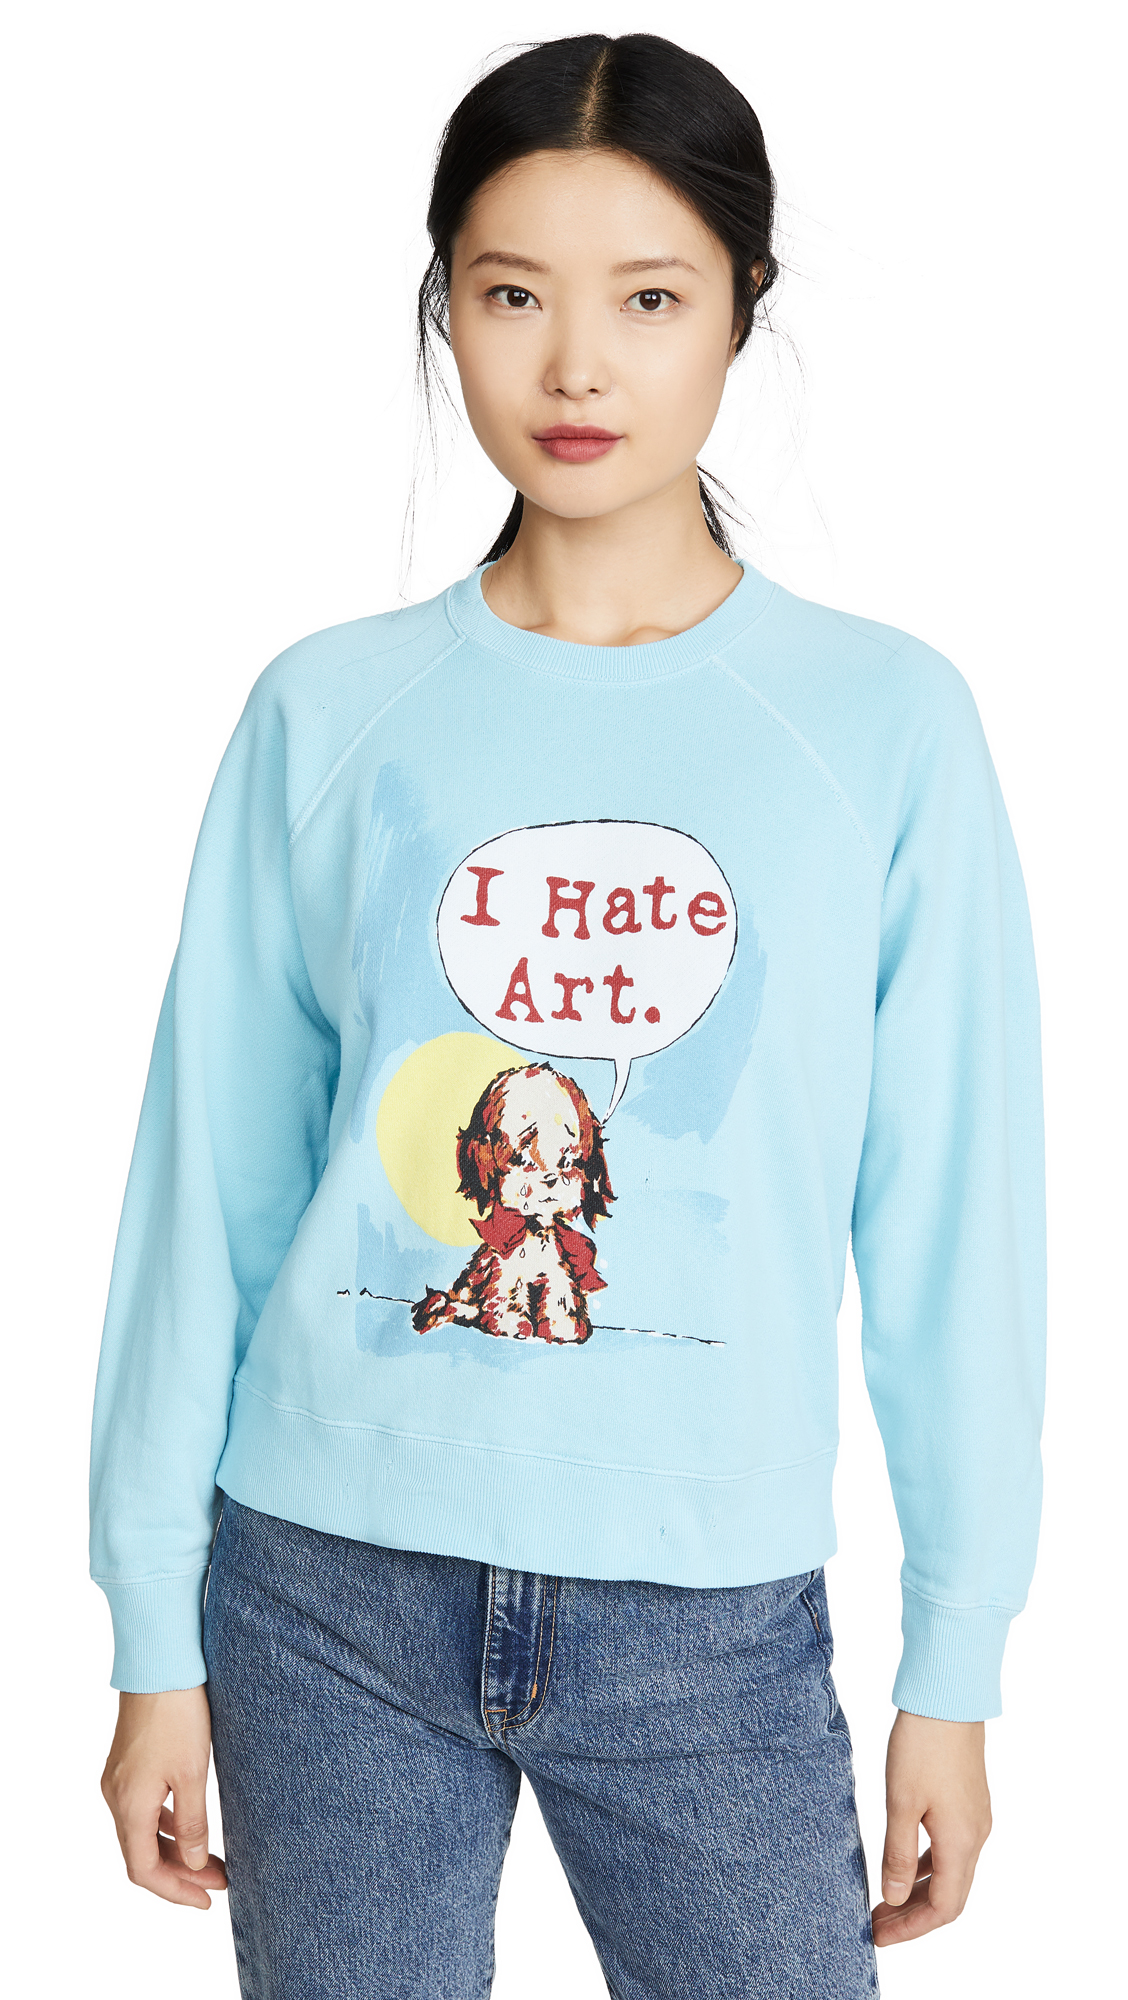 The Marc Jacobs Magda Archer x The Collaboration Sweatshirt